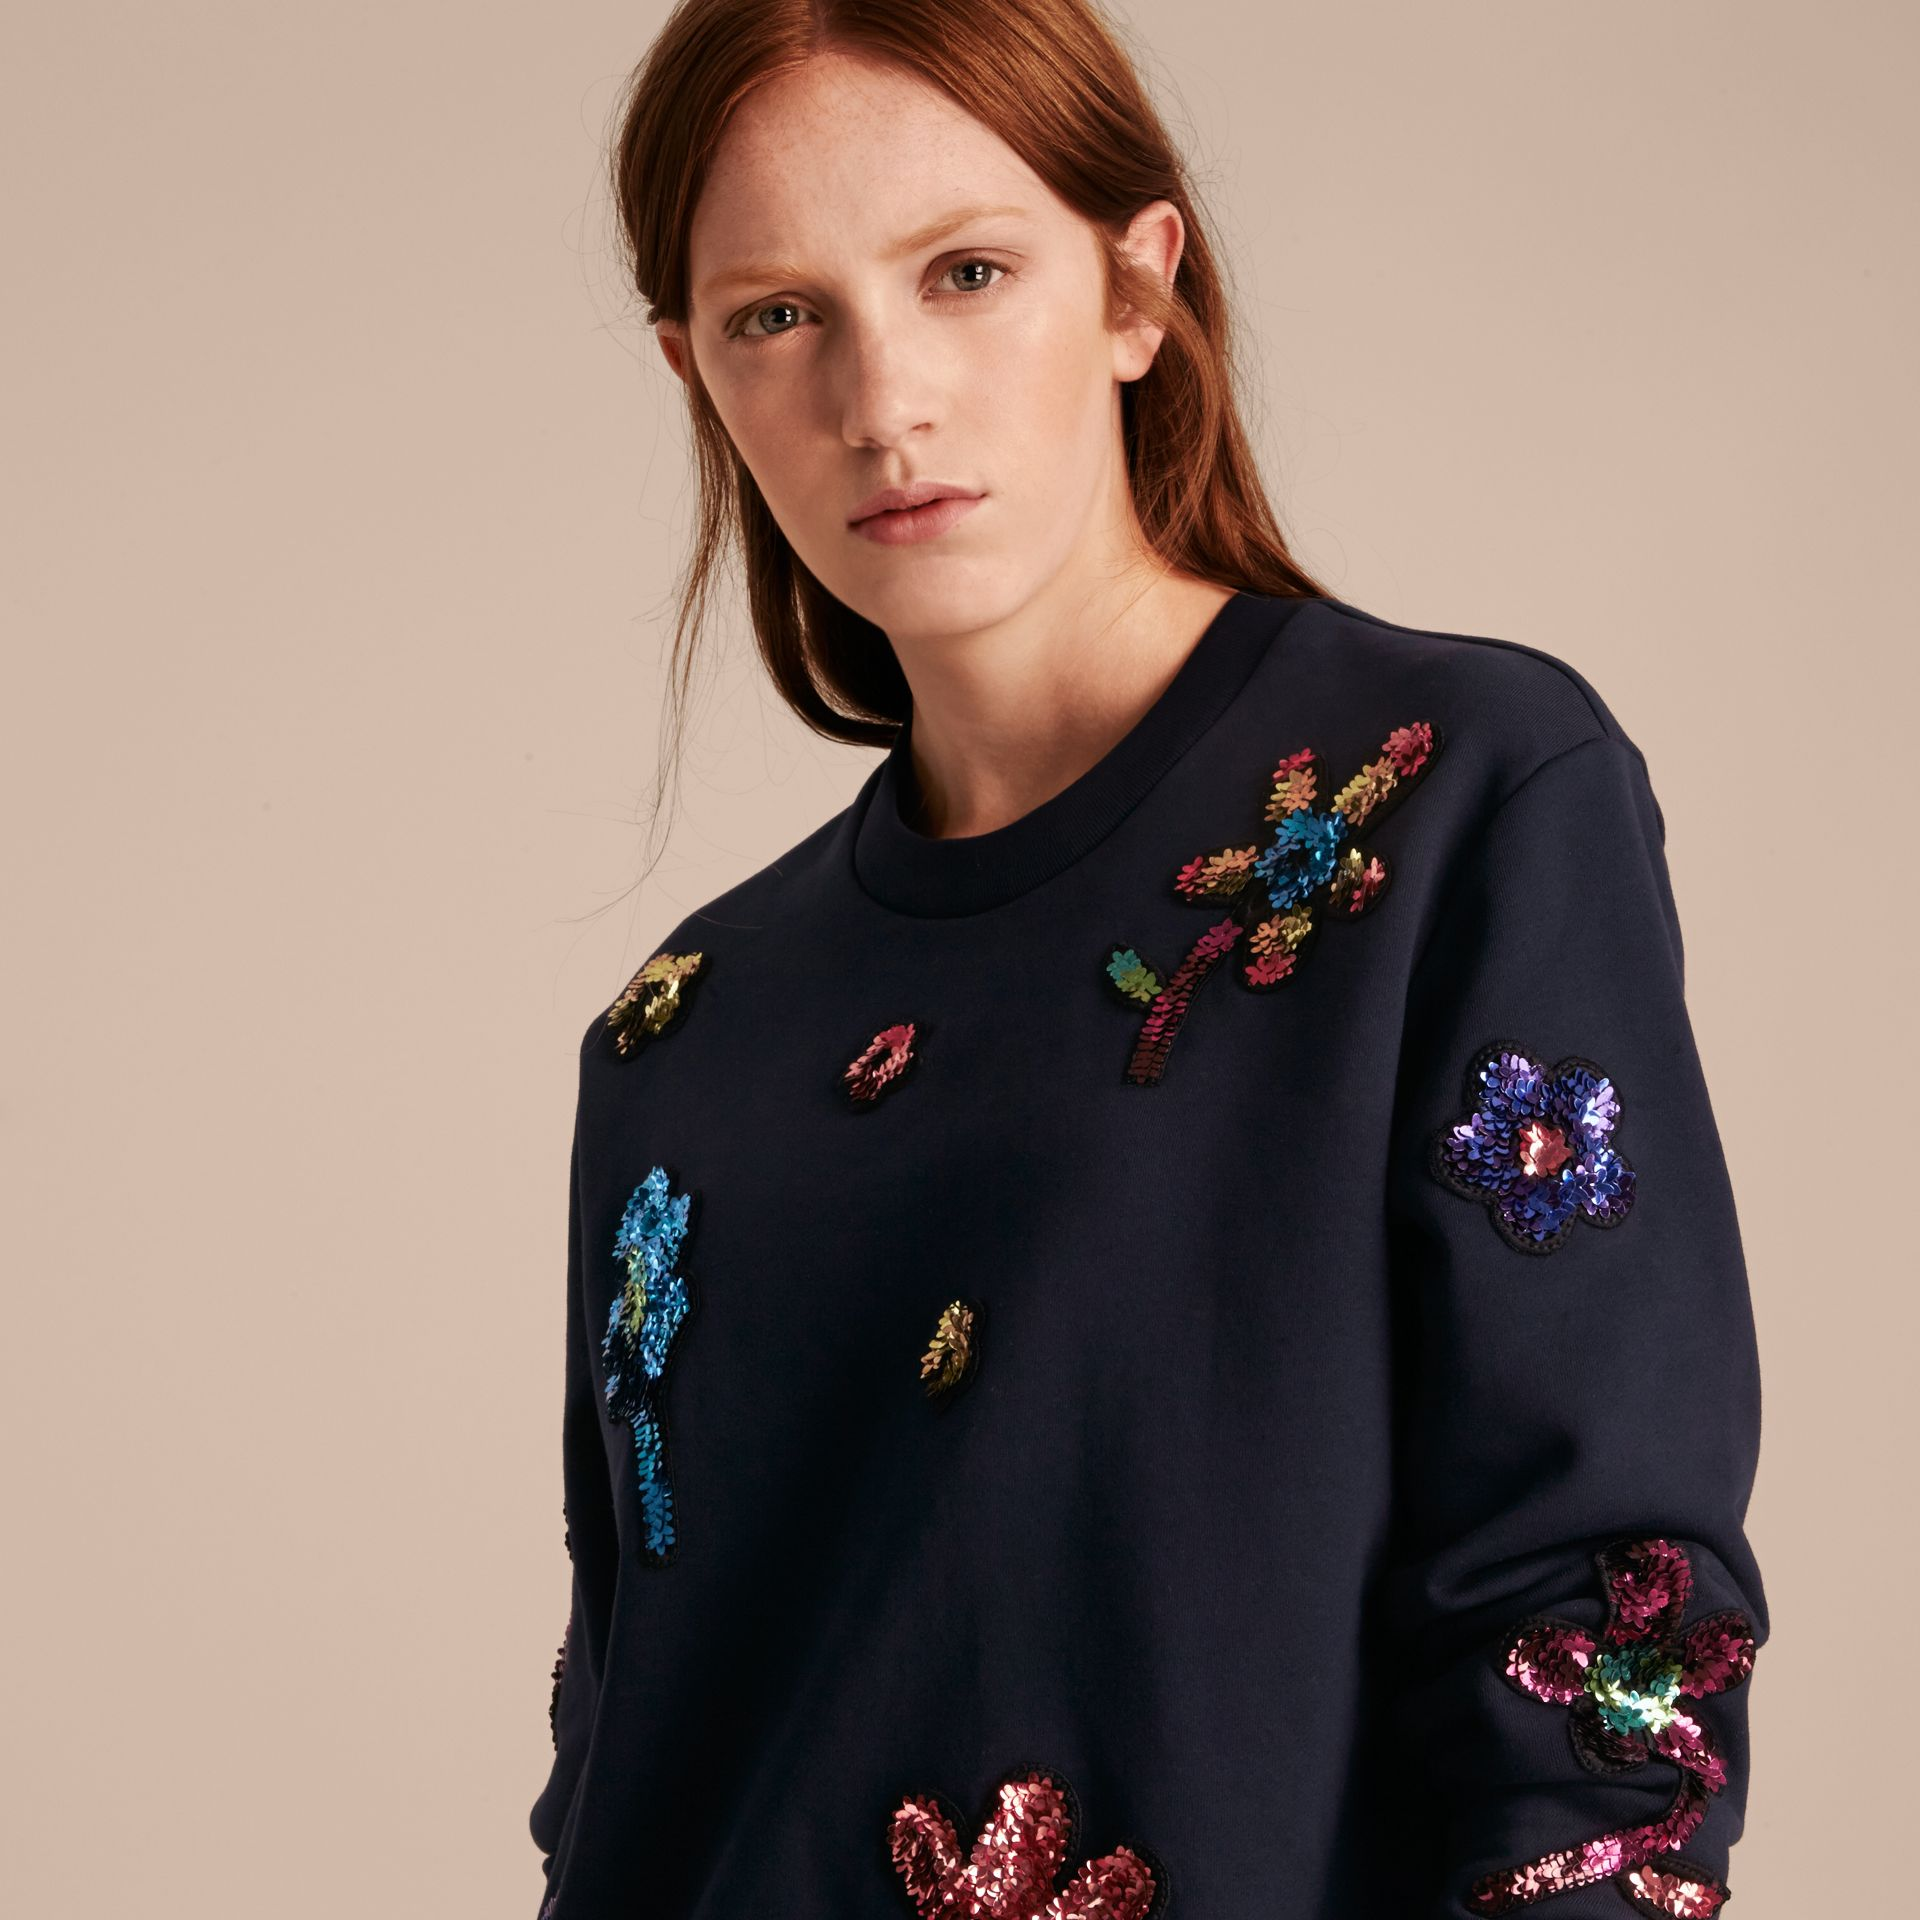 Navy Sequin Floral Appliqué Cotton Sweatshirt Navy - gallery image 5